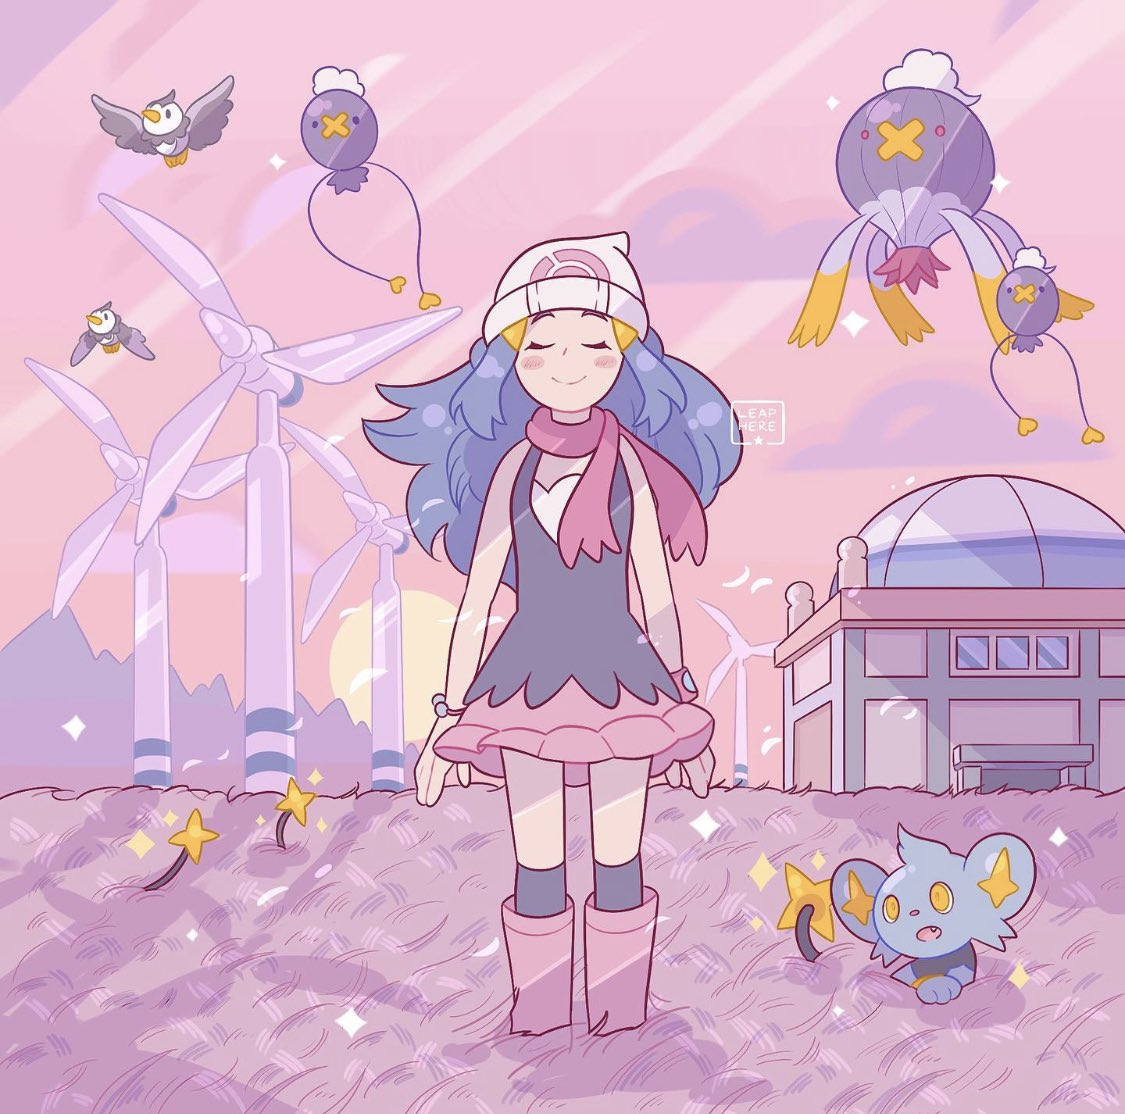 1girl barrette bird black_dress black_legwear blue_hair boots building closed_eyes commentary creature day dress drifblim drifloon english_commentary fang flat_chest flying gen_4_pokemon grass hair_ornament happy hikari_(pokemon) long_hair pink_footwear pink_theme pokemon pokemon_(creature) pokemon_(game) pokemon_dppt scarf shinx sidelocks sky sleeveless sleeveless_dress smile socks standing starly valley_windworks wind_turbine windmill window yamato-leaphere yellow_eyes